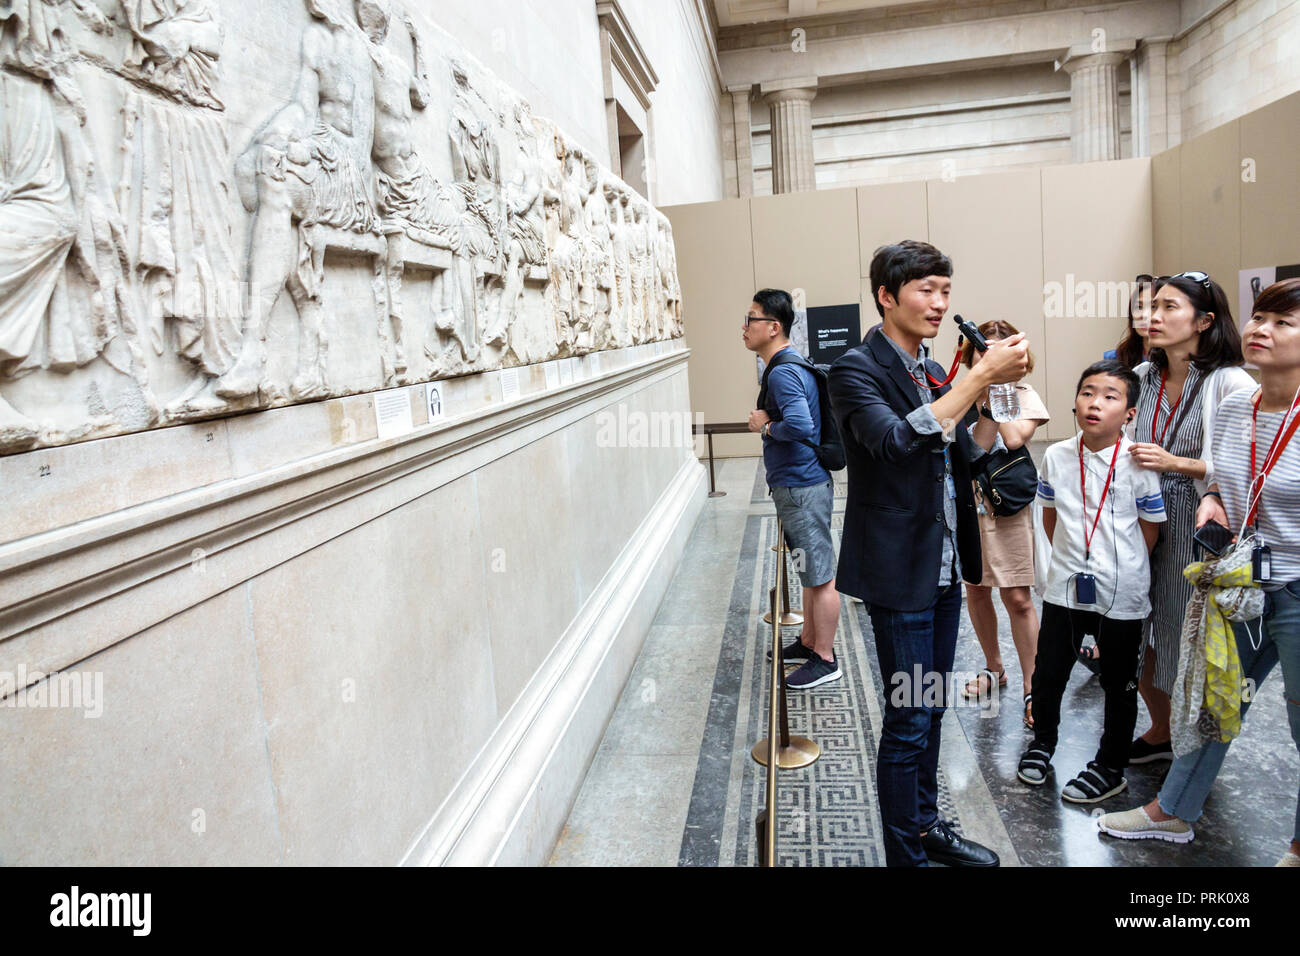 London England United Kingdom Great Britain Bloomsbury The British Museum human culture history interior gallery Elgin Parthenon Marbles Classical Gre - Stock Image